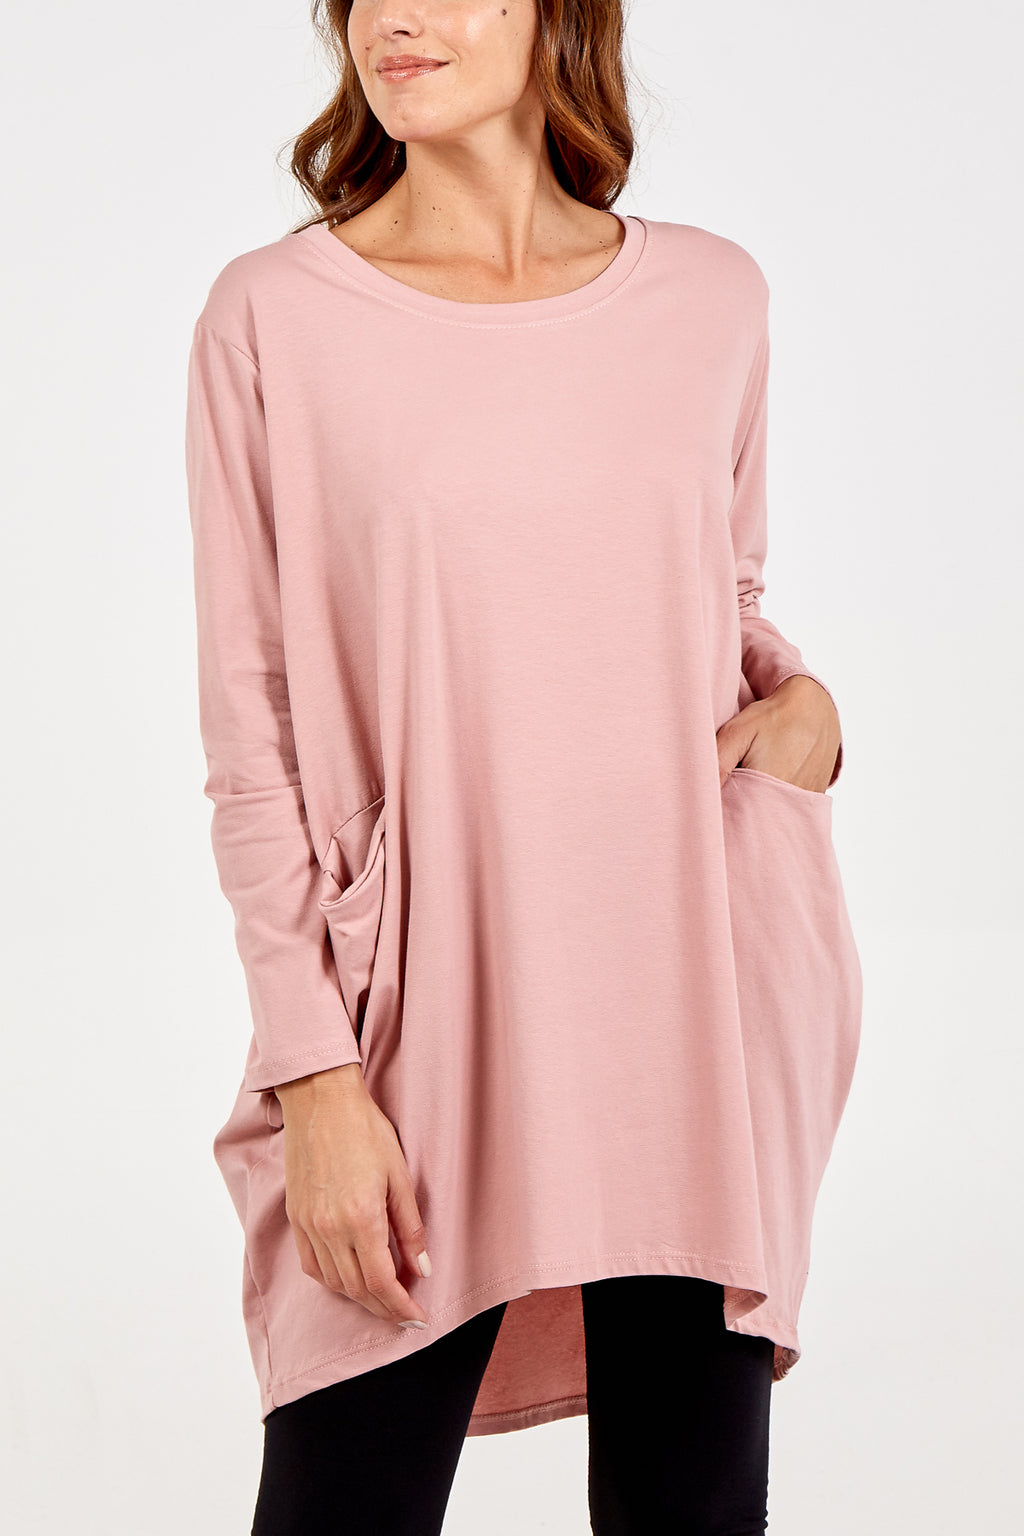 Long Sleeve Two Pocket Top